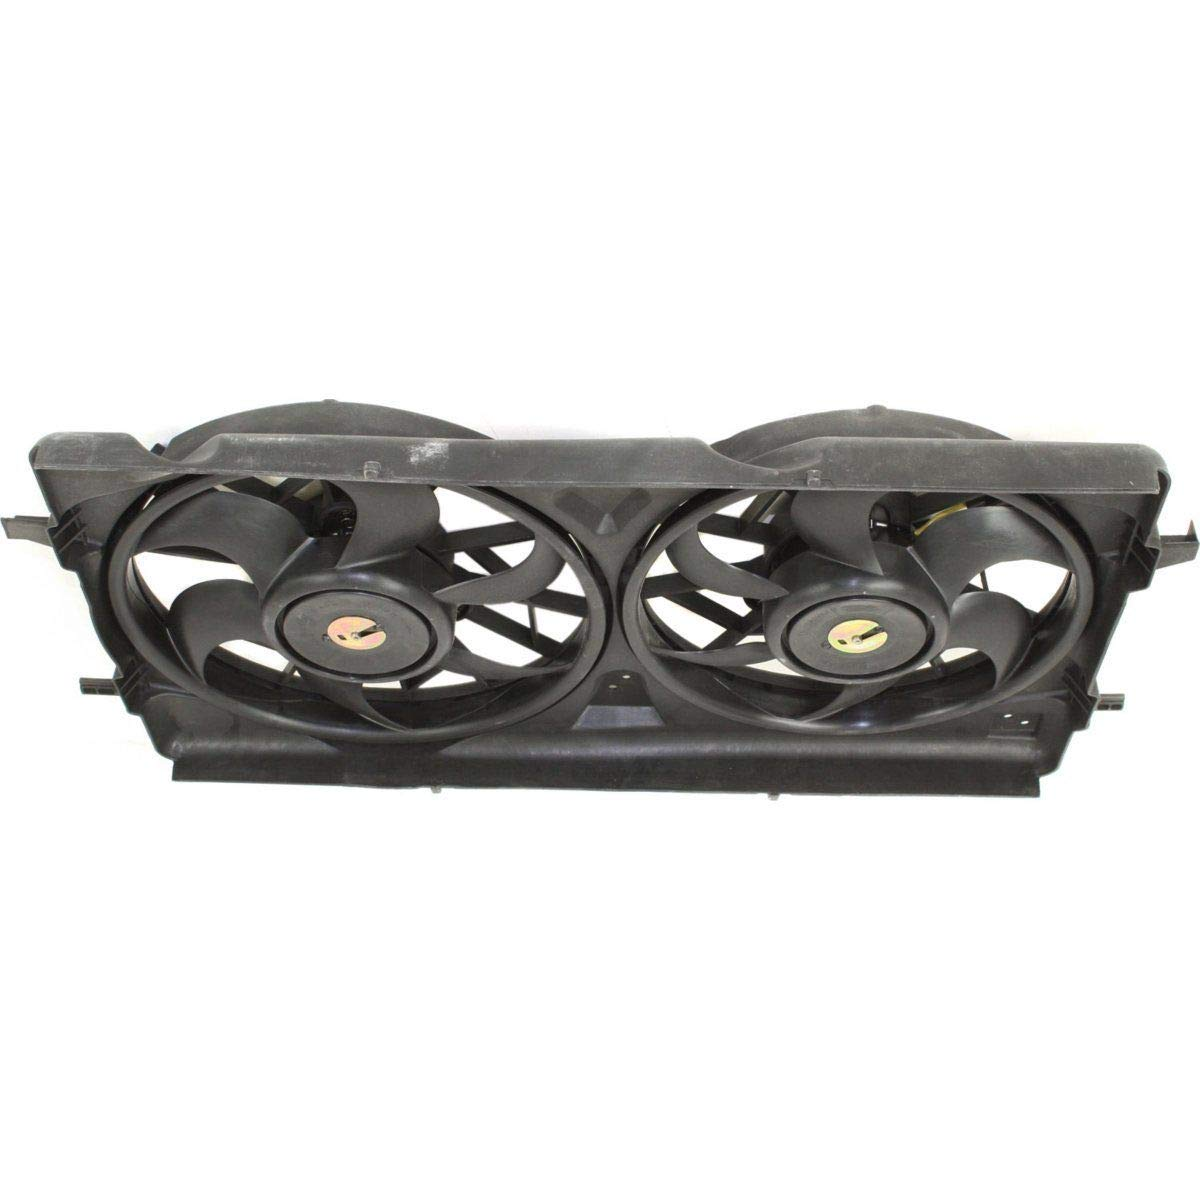 Radiator Cooling Fan For 05-10 Chevy Cobalt//04-07 Saturn Ion Dual Fan 2.0L Turbo